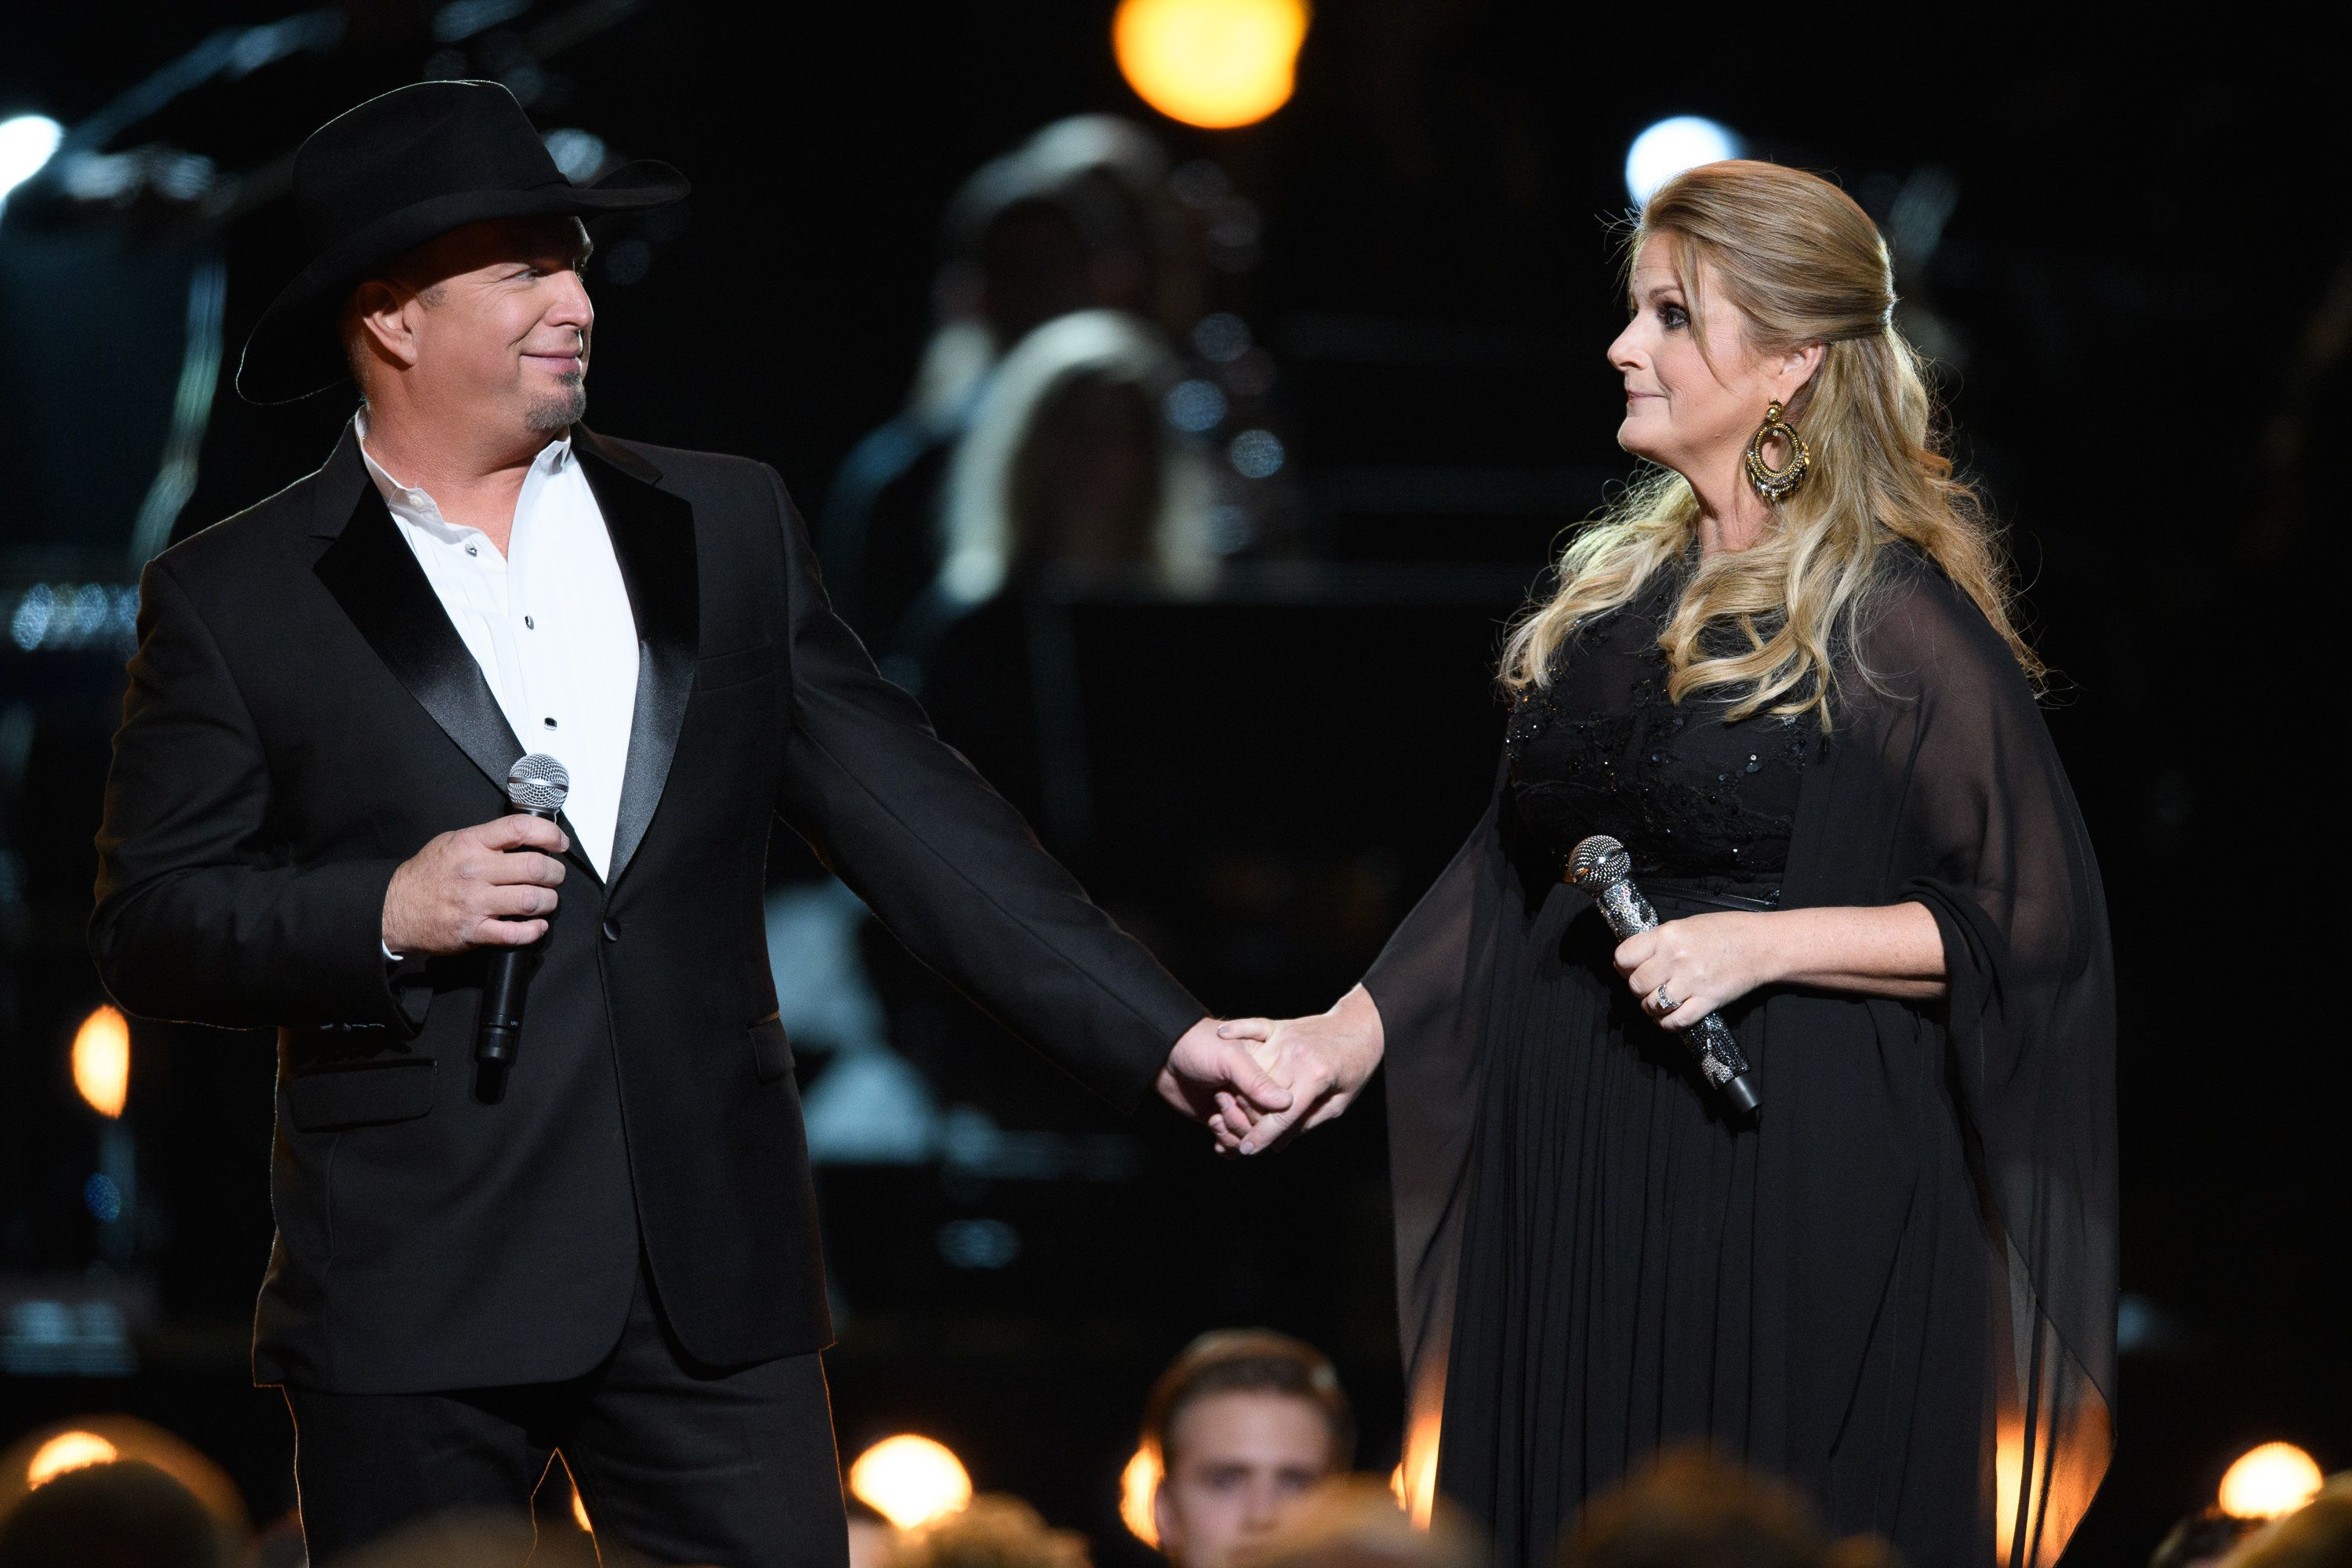 THE 50th ANNUAL CMA AWARDS - The 50th Annual CMA Awards, hosted by Brad Paisley and Carrie Underwood, broadcasts live from the Bridgestone Arena in Nashville, Wednesday, November 2 (8:00-11:00 p.m. EDT), on the ABC Television Network. (Image Group LA/ABC via Getty Images) GARTH BROOKS, TRISHA YEARWOOD